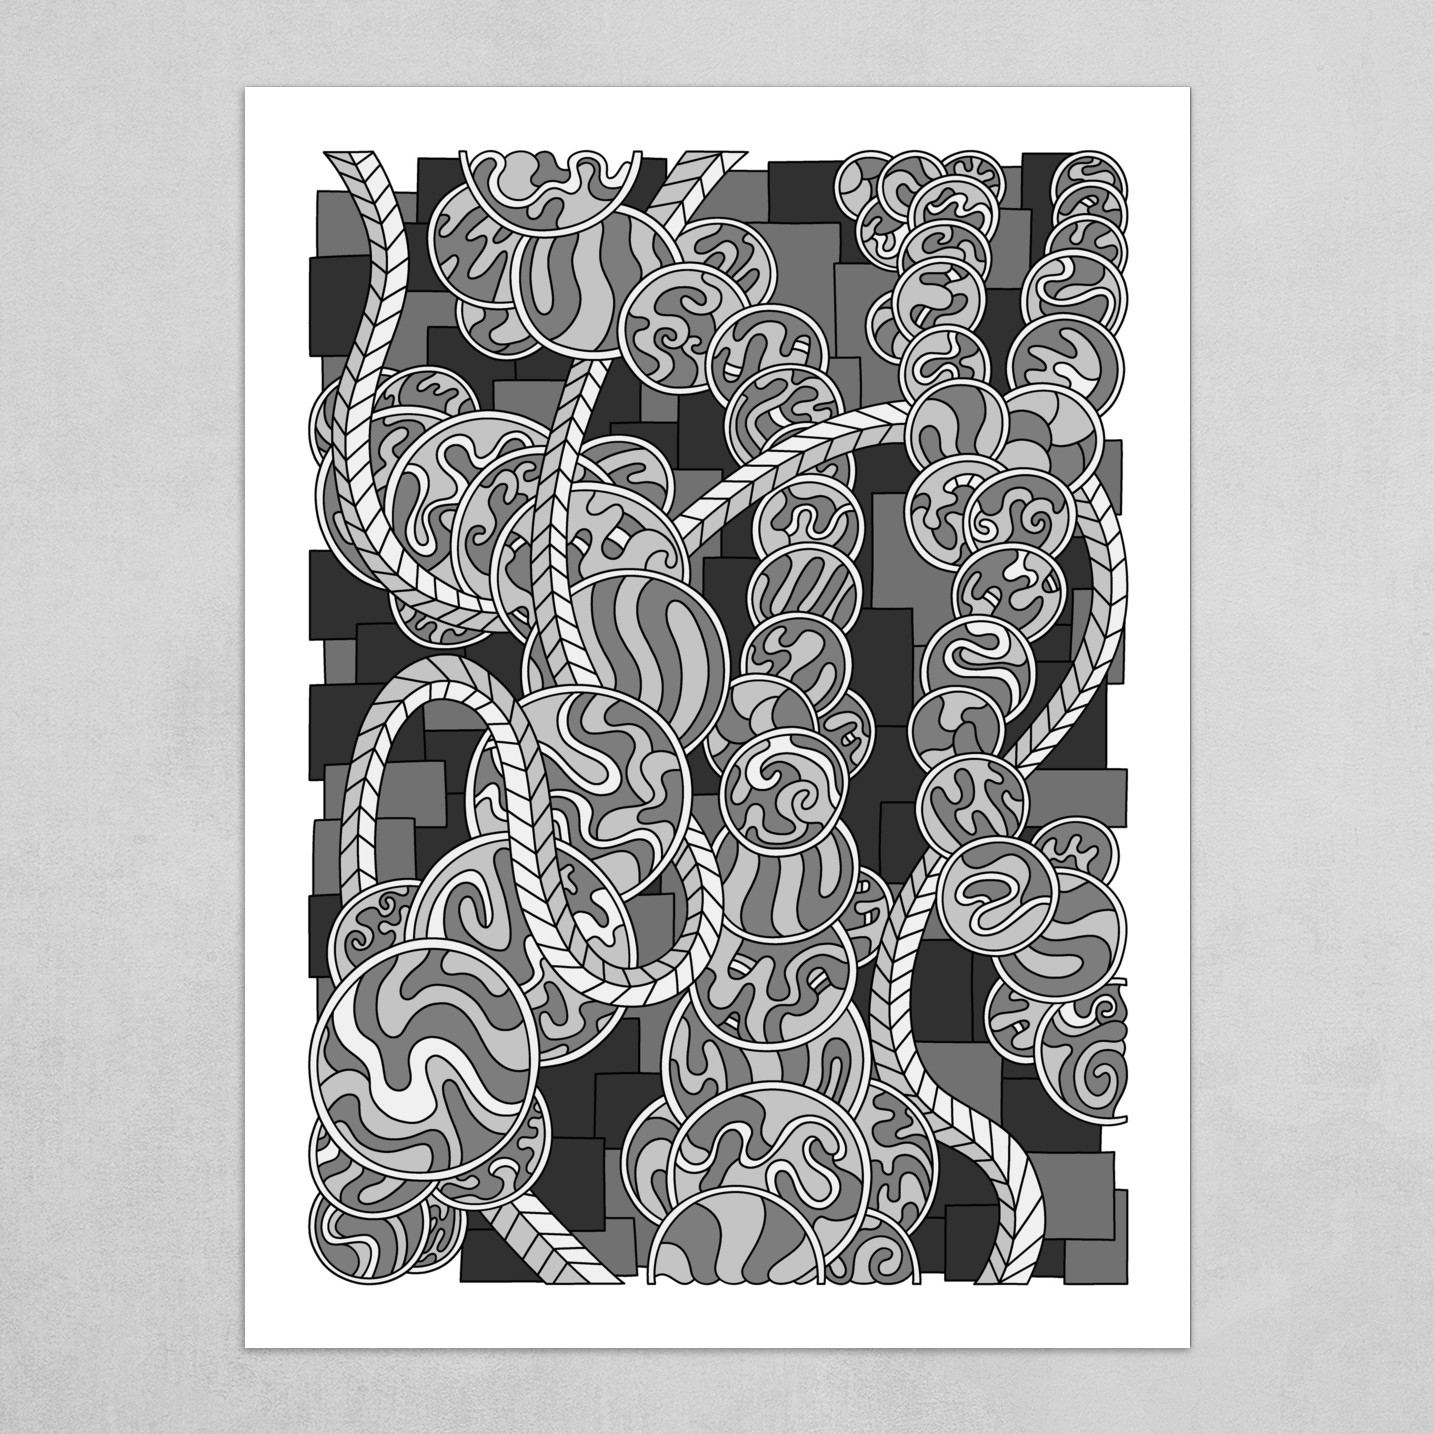 Wandering Abstract Line Art 43: Grayscale